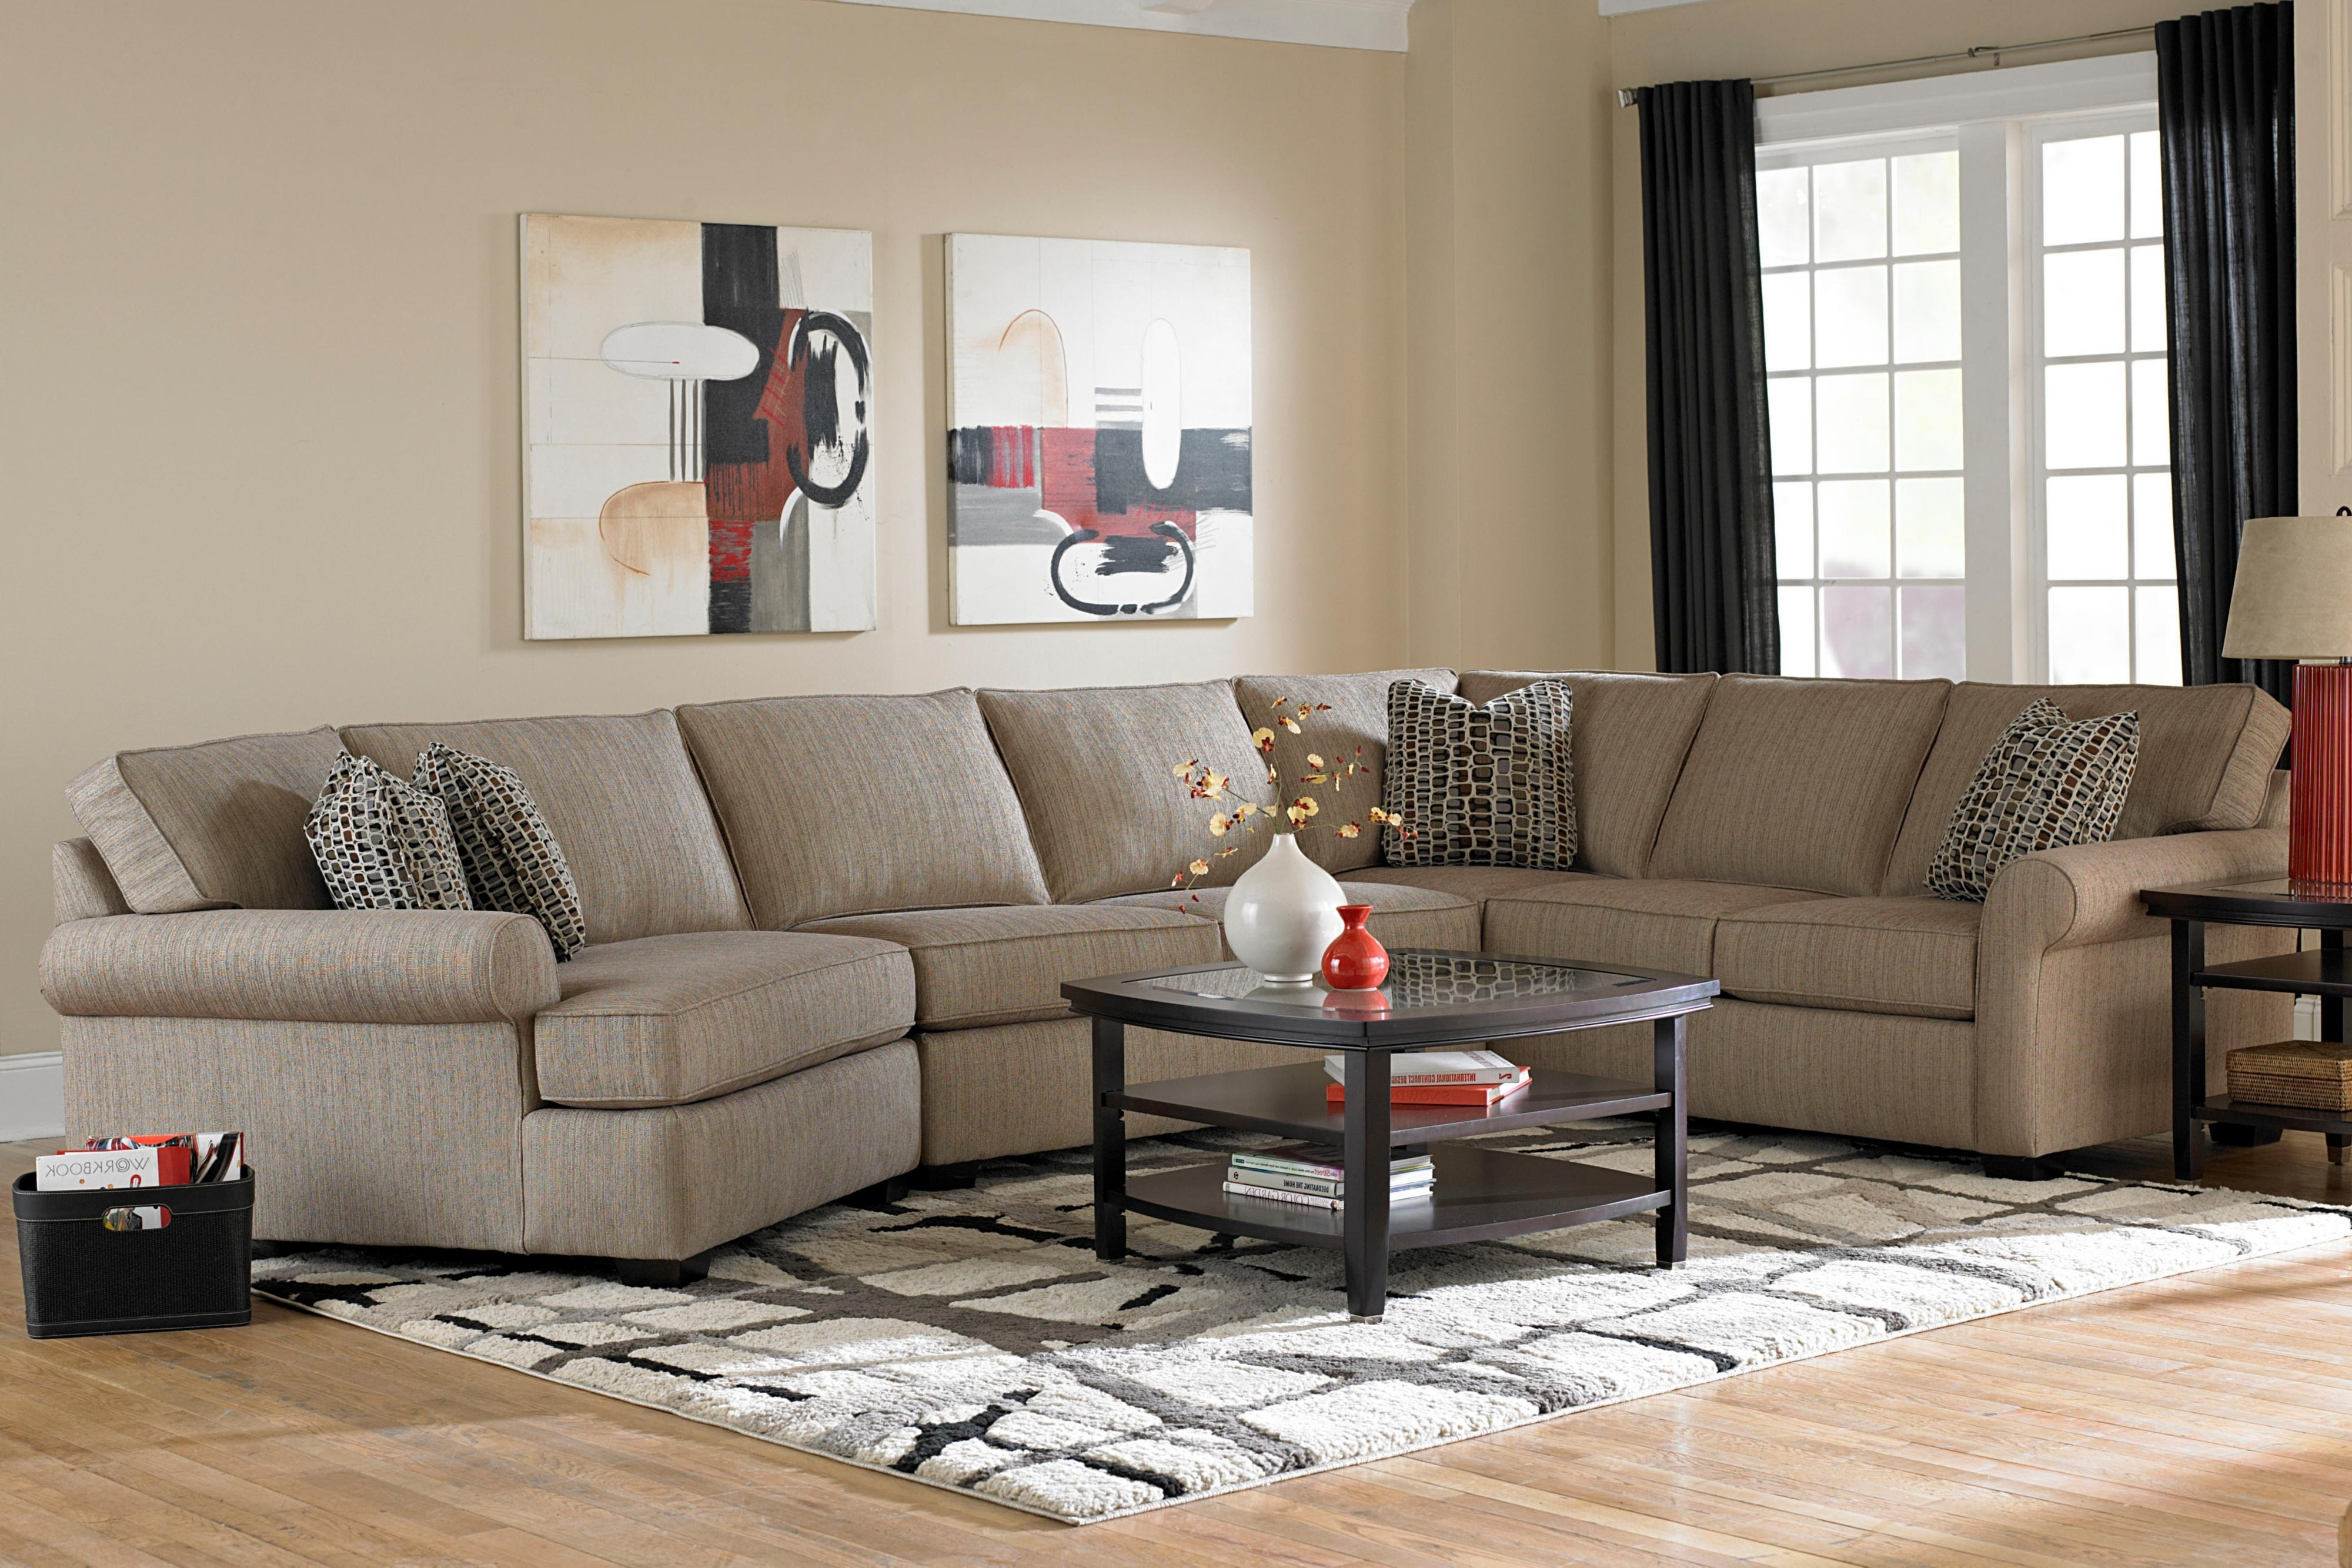 Broyhill Furniture Ethan Transitional Sectional Sofa With Right Within Fashionable Sectional Sofas In Greenville Sc (View 11 of 20)